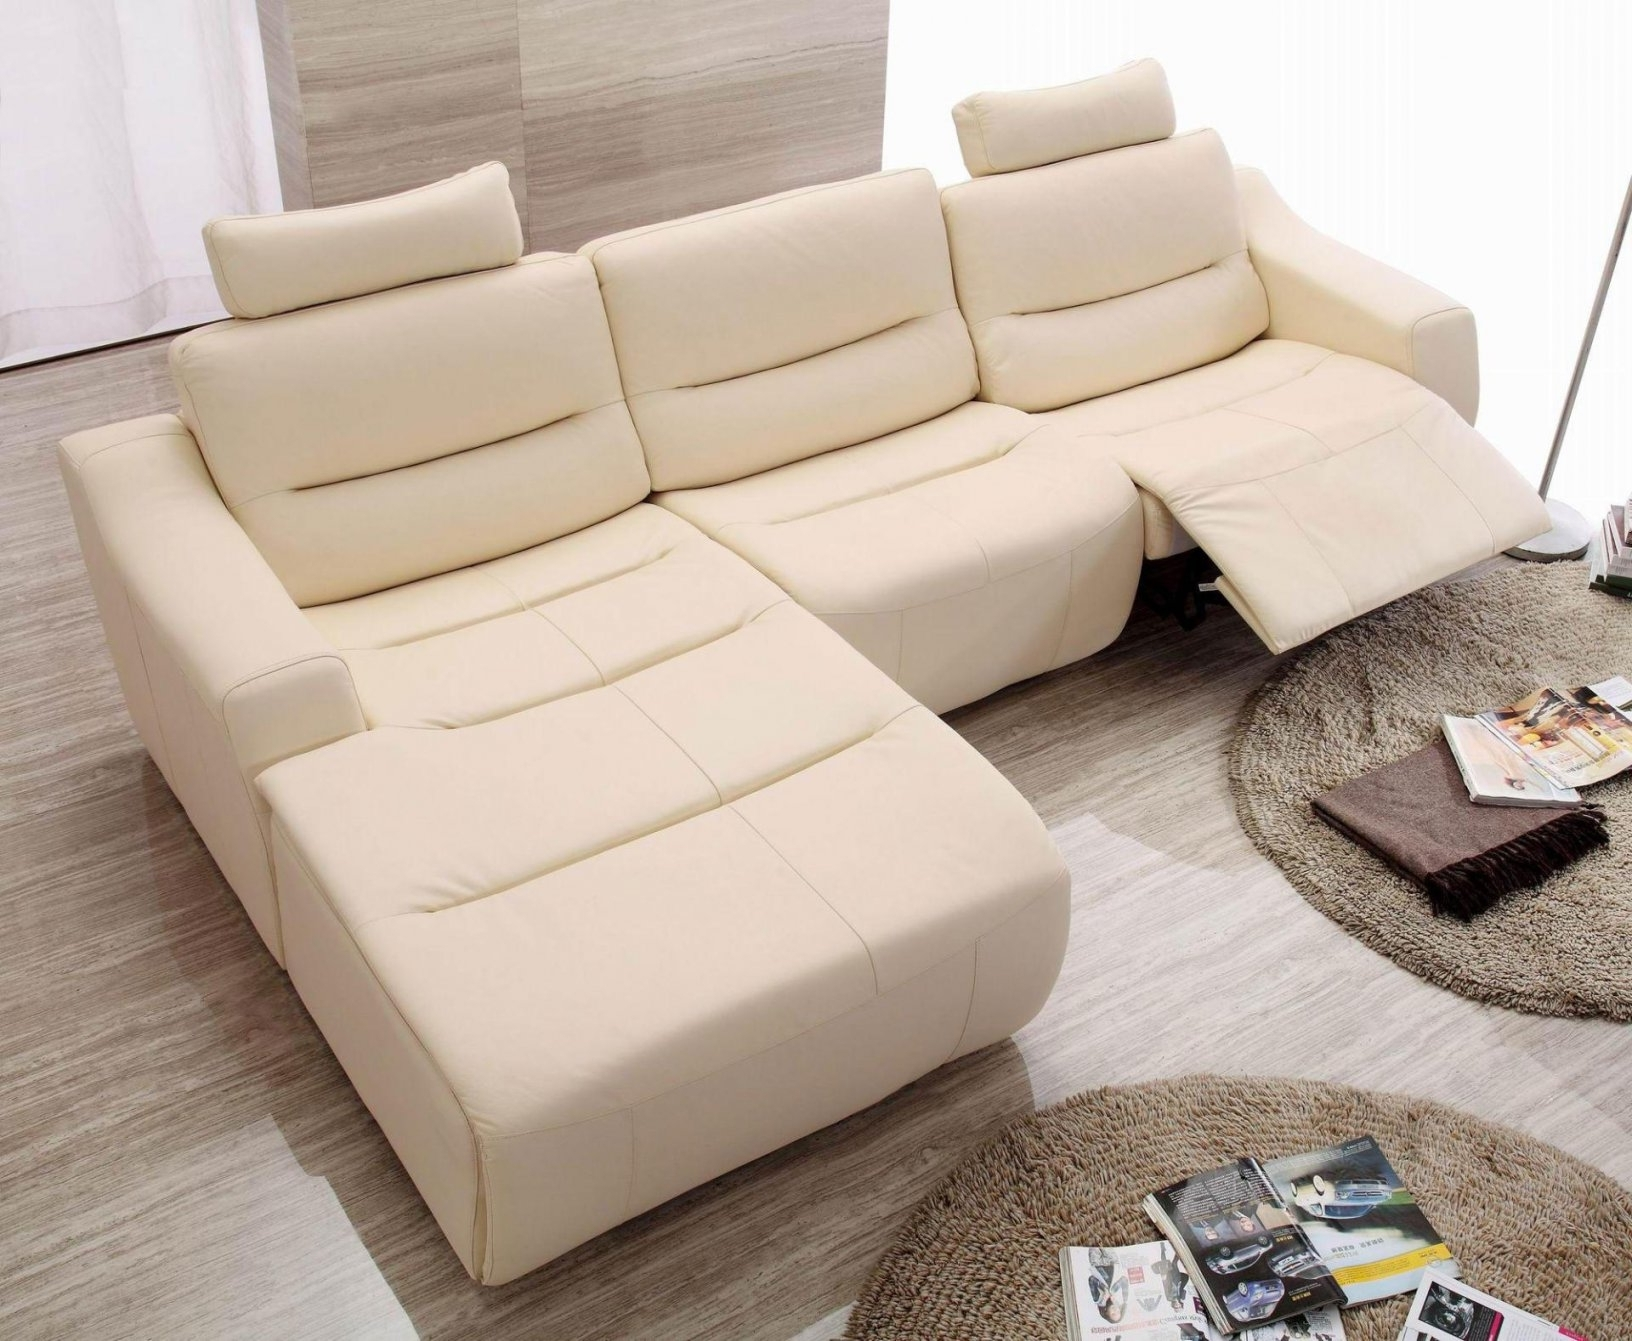 Modern Sectional Sofas For Small Spaces Throughout Popular Sectional Sofas For Small Spaces 14 About Remodel Regarding Modern (View 11 of 15)